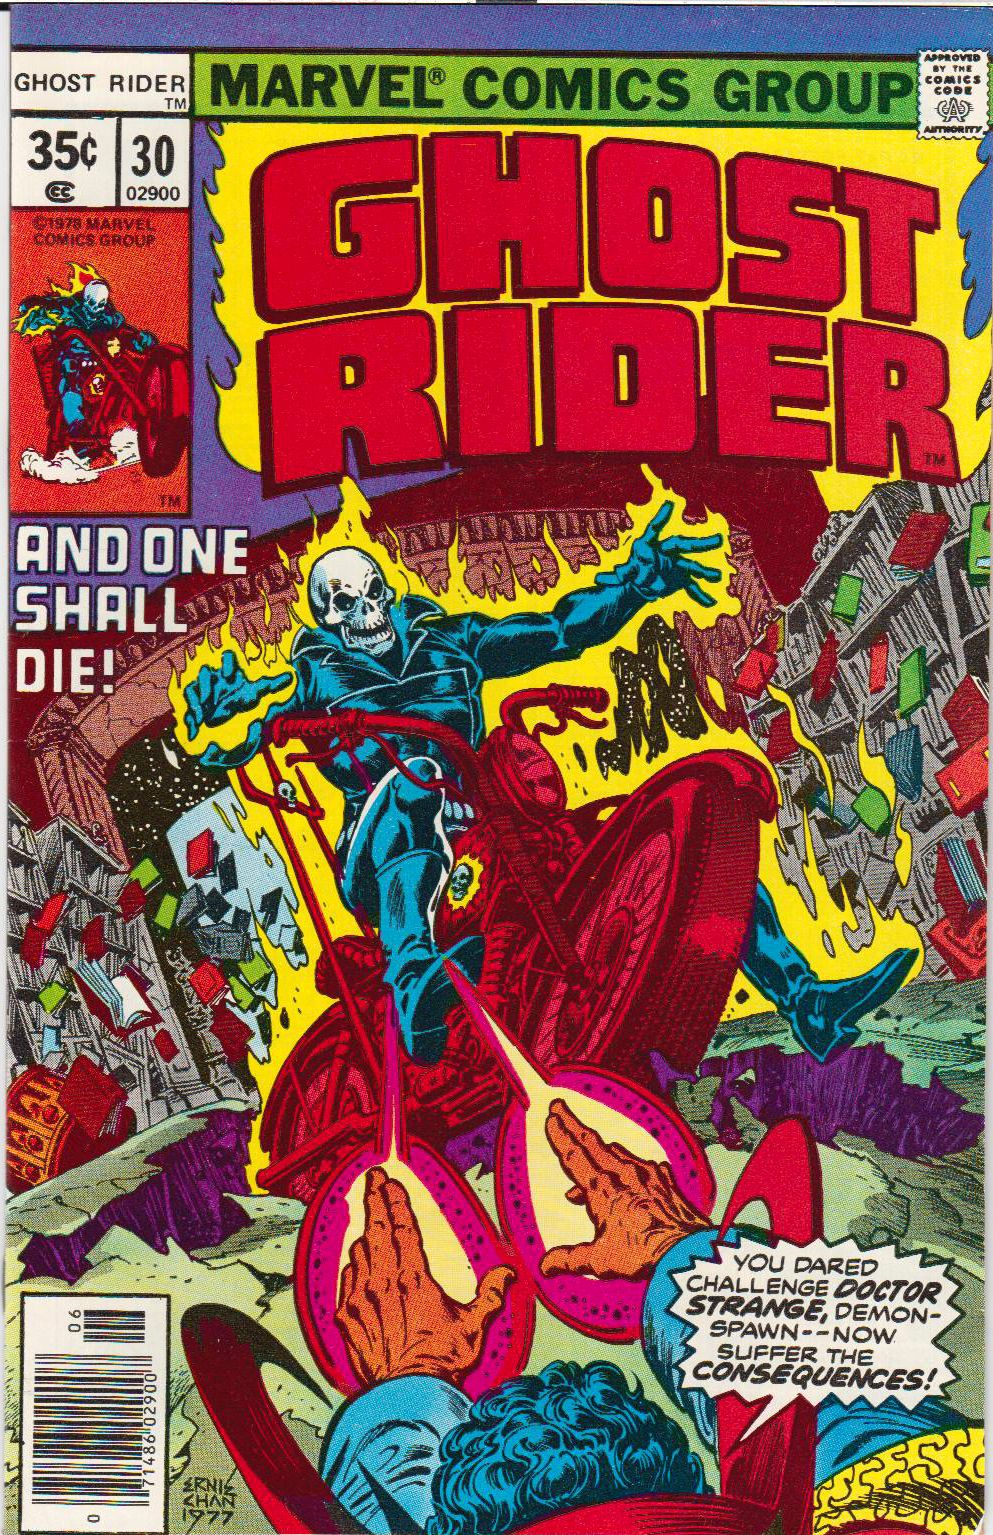 Bloody Pit of Rod: Ghost Rider Covers!